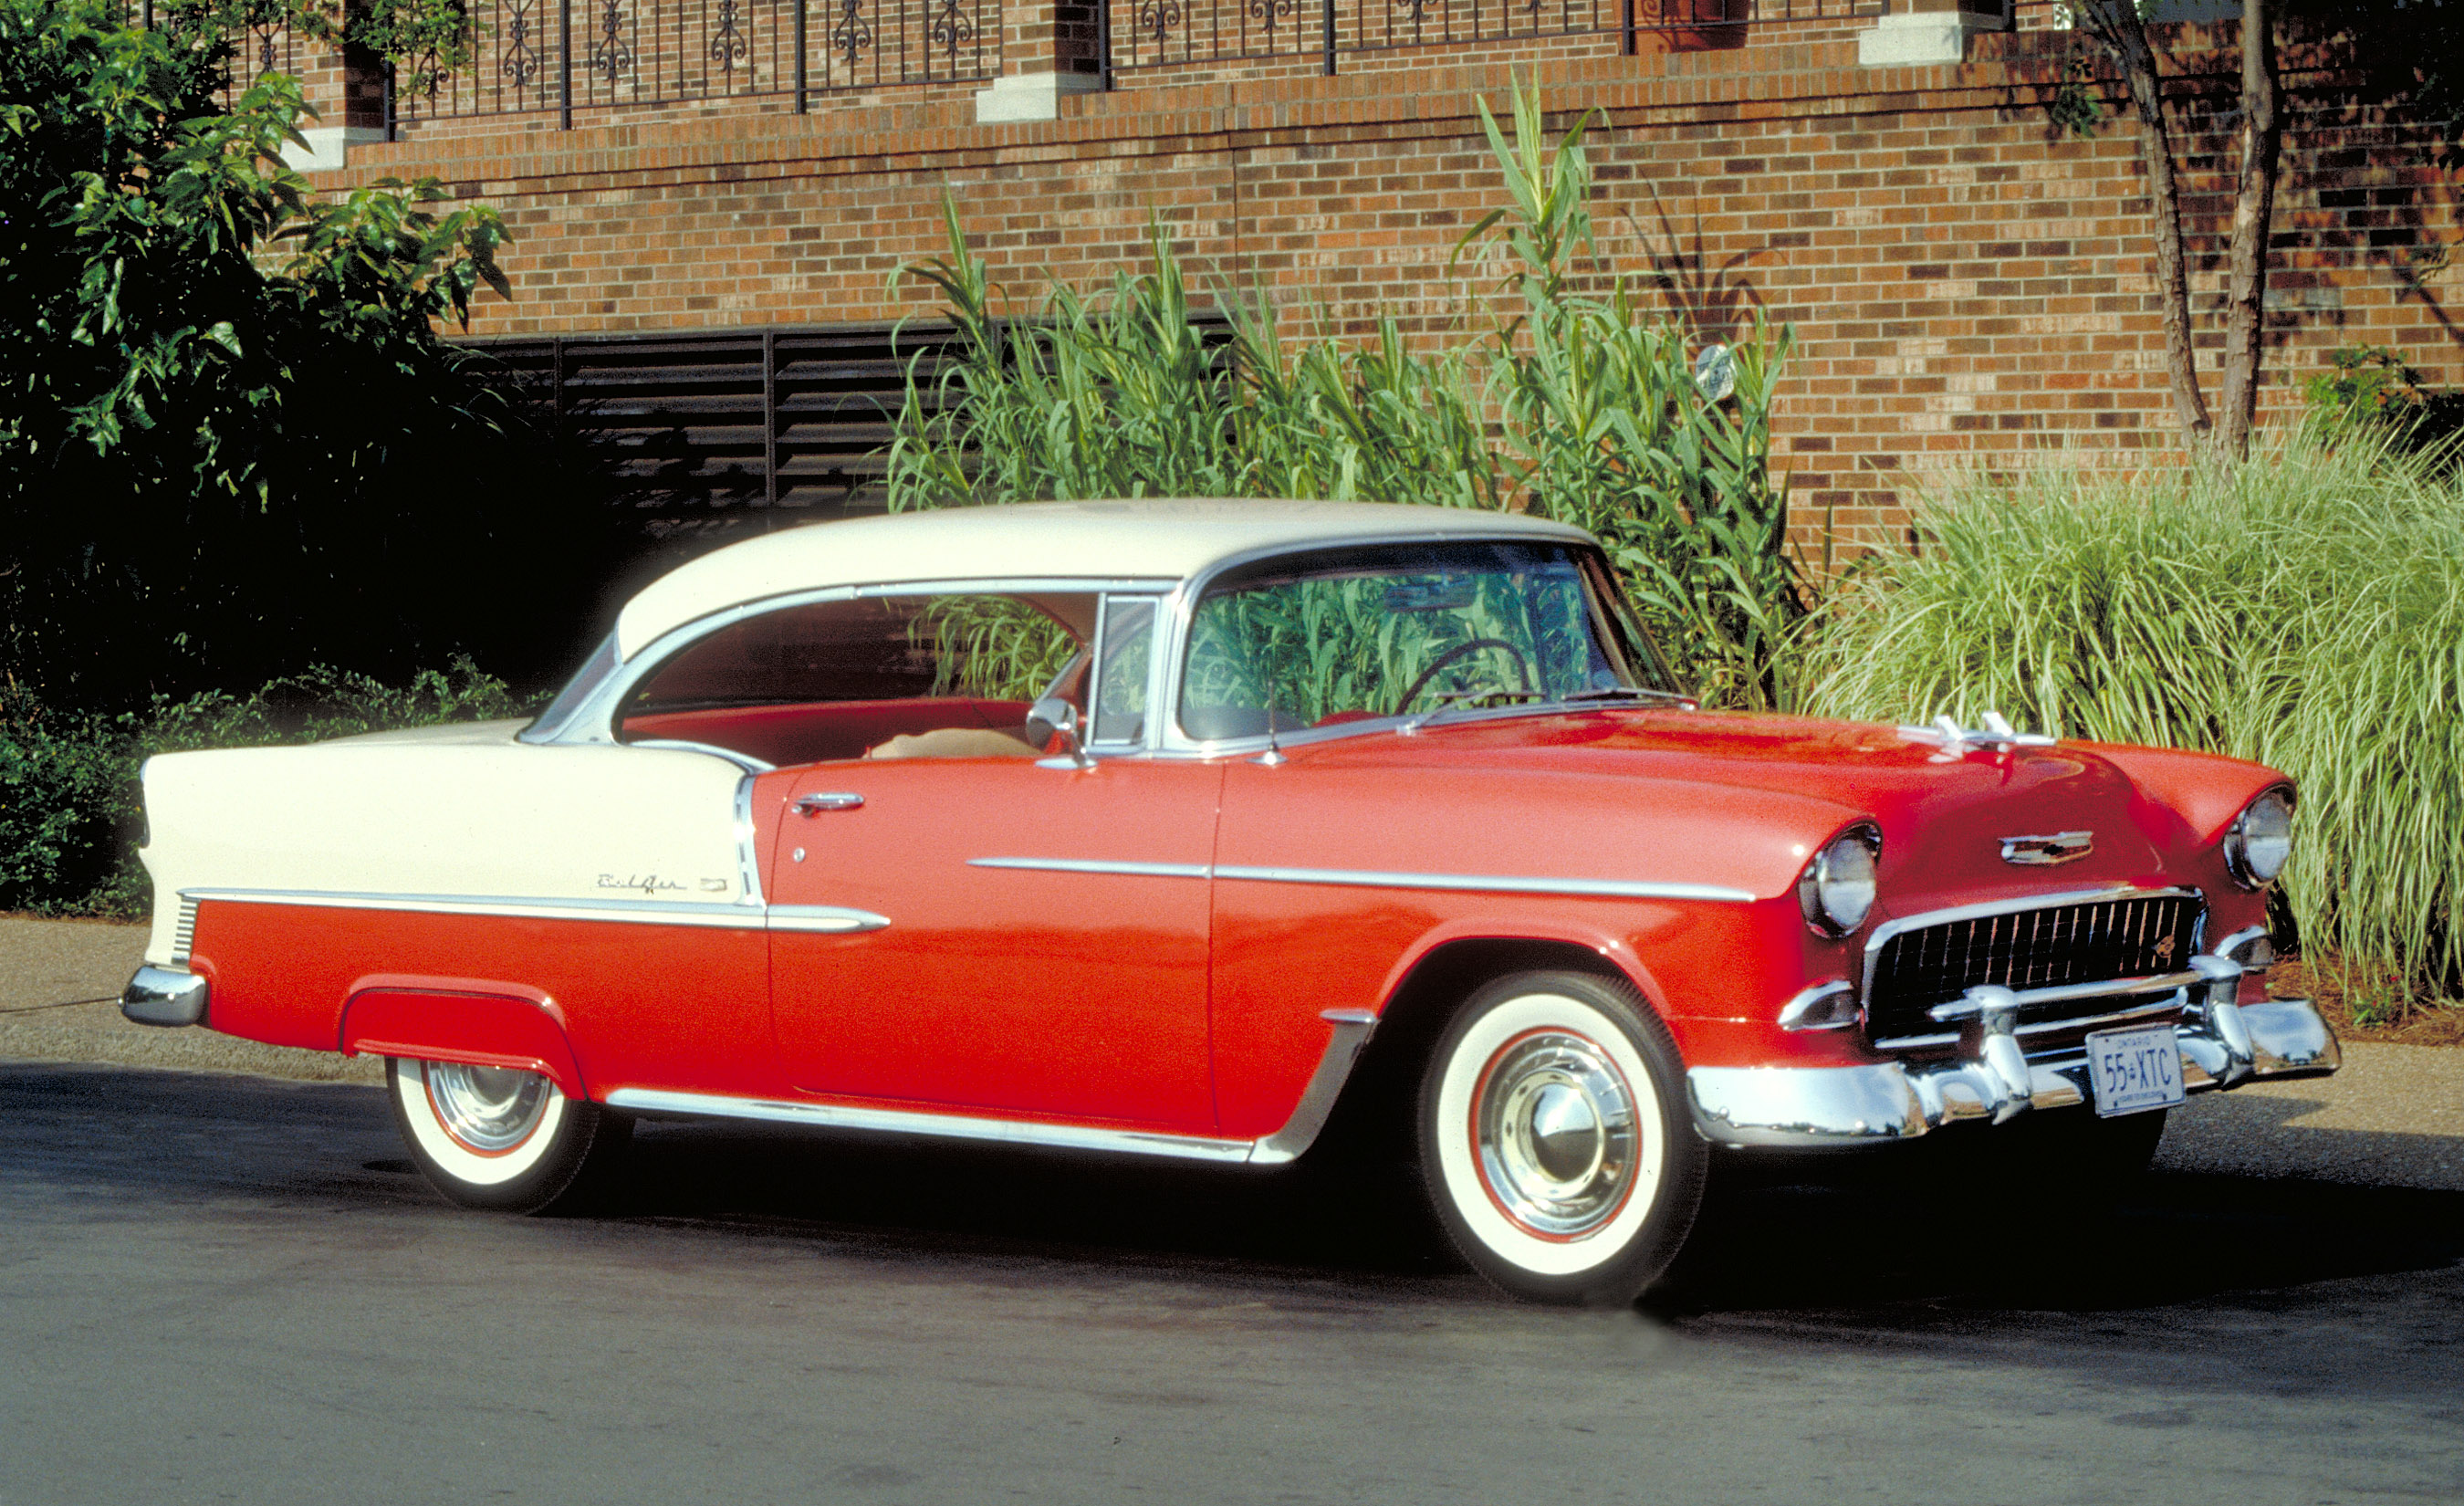 The all-new 1955 Bel Air wonderfully redefined Chevrolet, with its sleek ÒMotoramicÓ styling, improved chassis and sizzling new 265-cid ÒTurbo-FireÓ V-8 Ð the first of Chevy's legendary small-block V-8s.